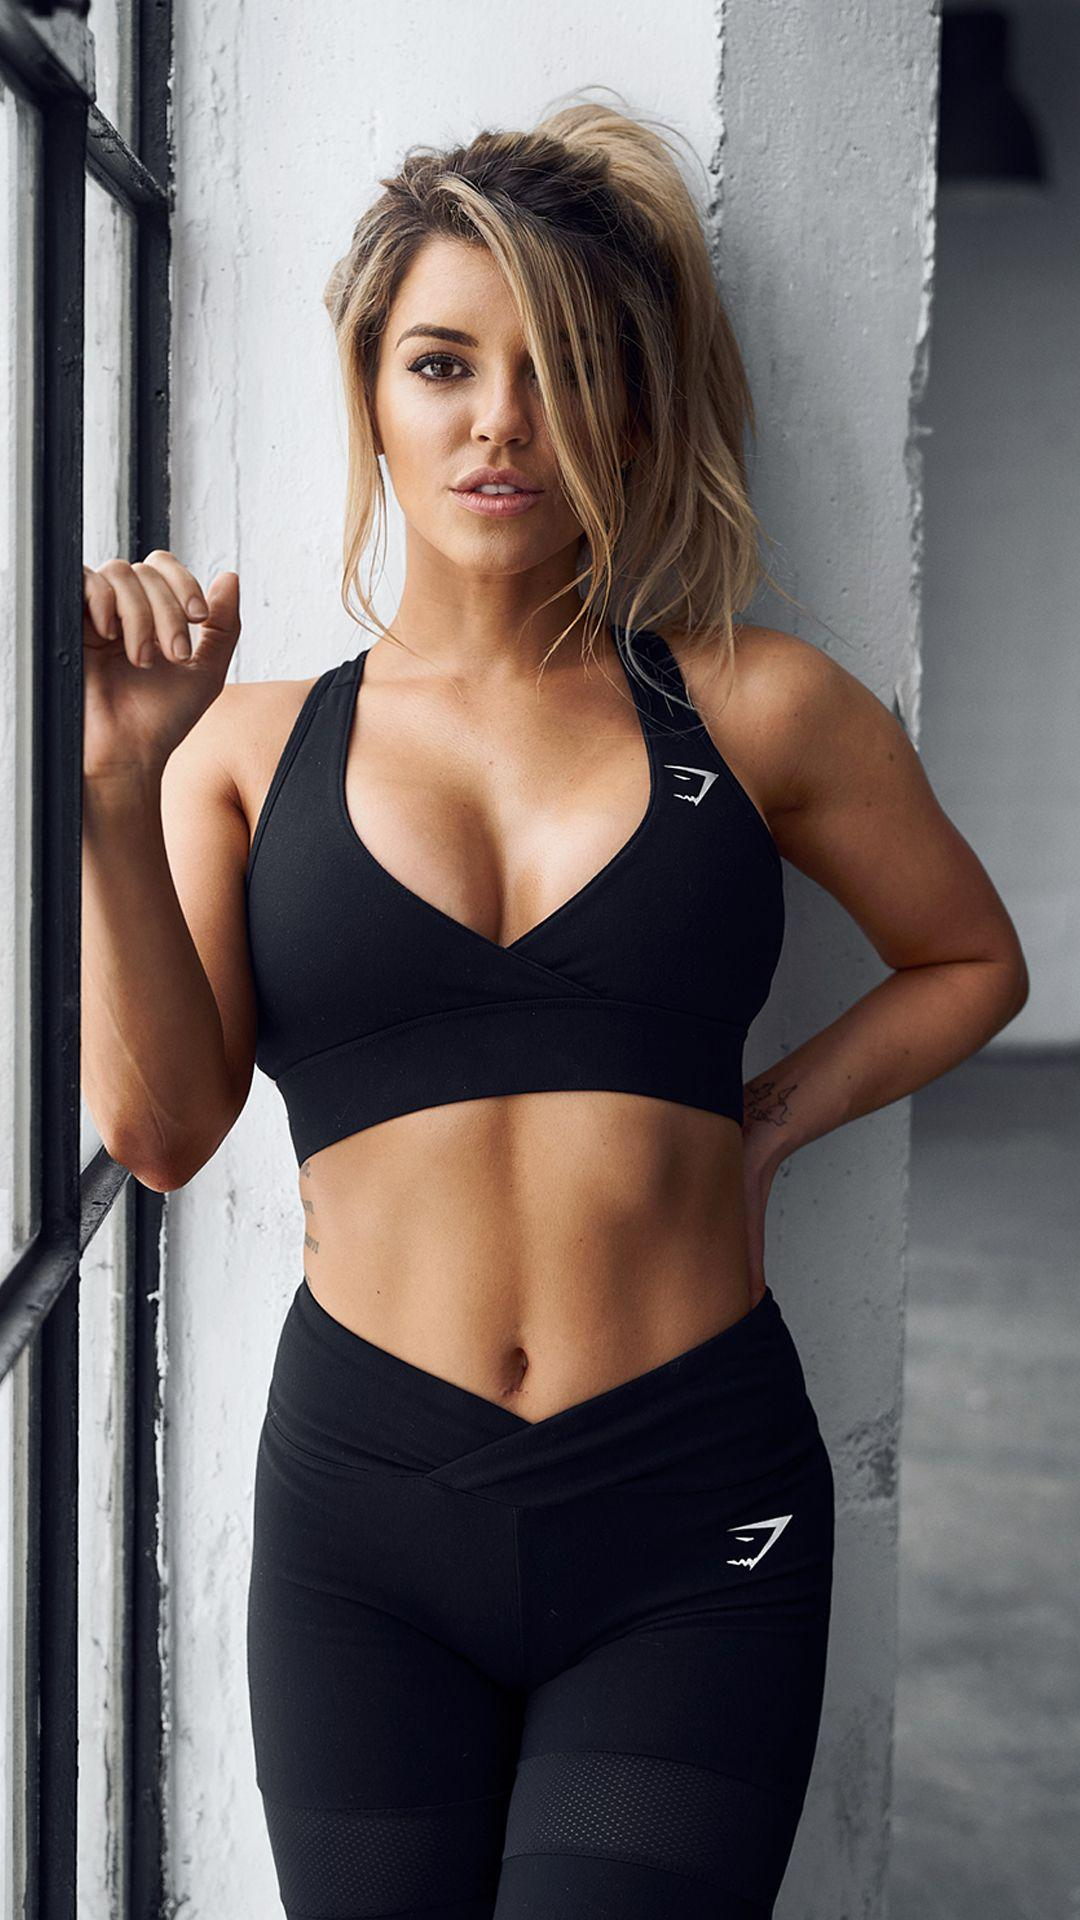 Sports Bra Wallpapers Wallpaper Cave